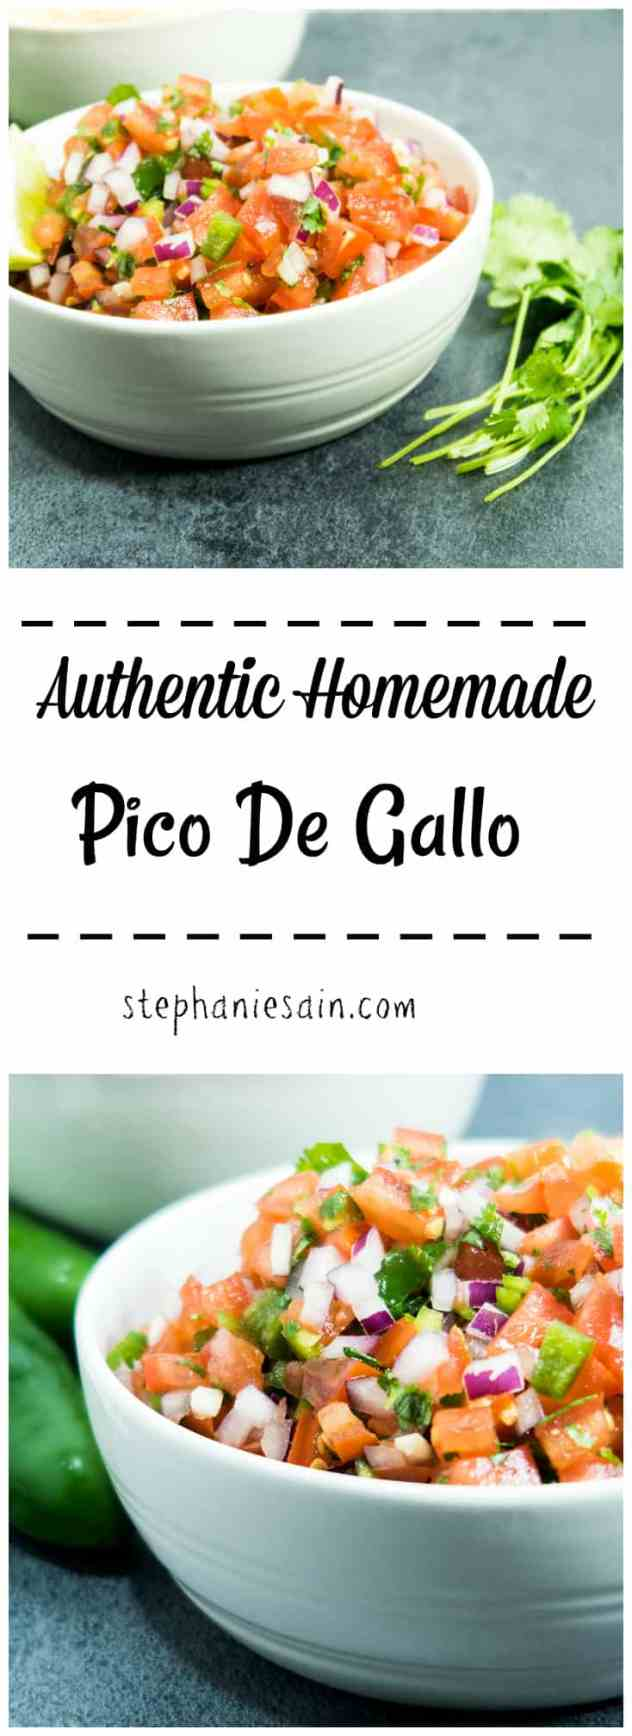 Authentic Homemade Pico De Gallo is an easy six ingredient recipe that is great served as an appetizer with chips or topped on so many other things. Vegan & Gluten free.